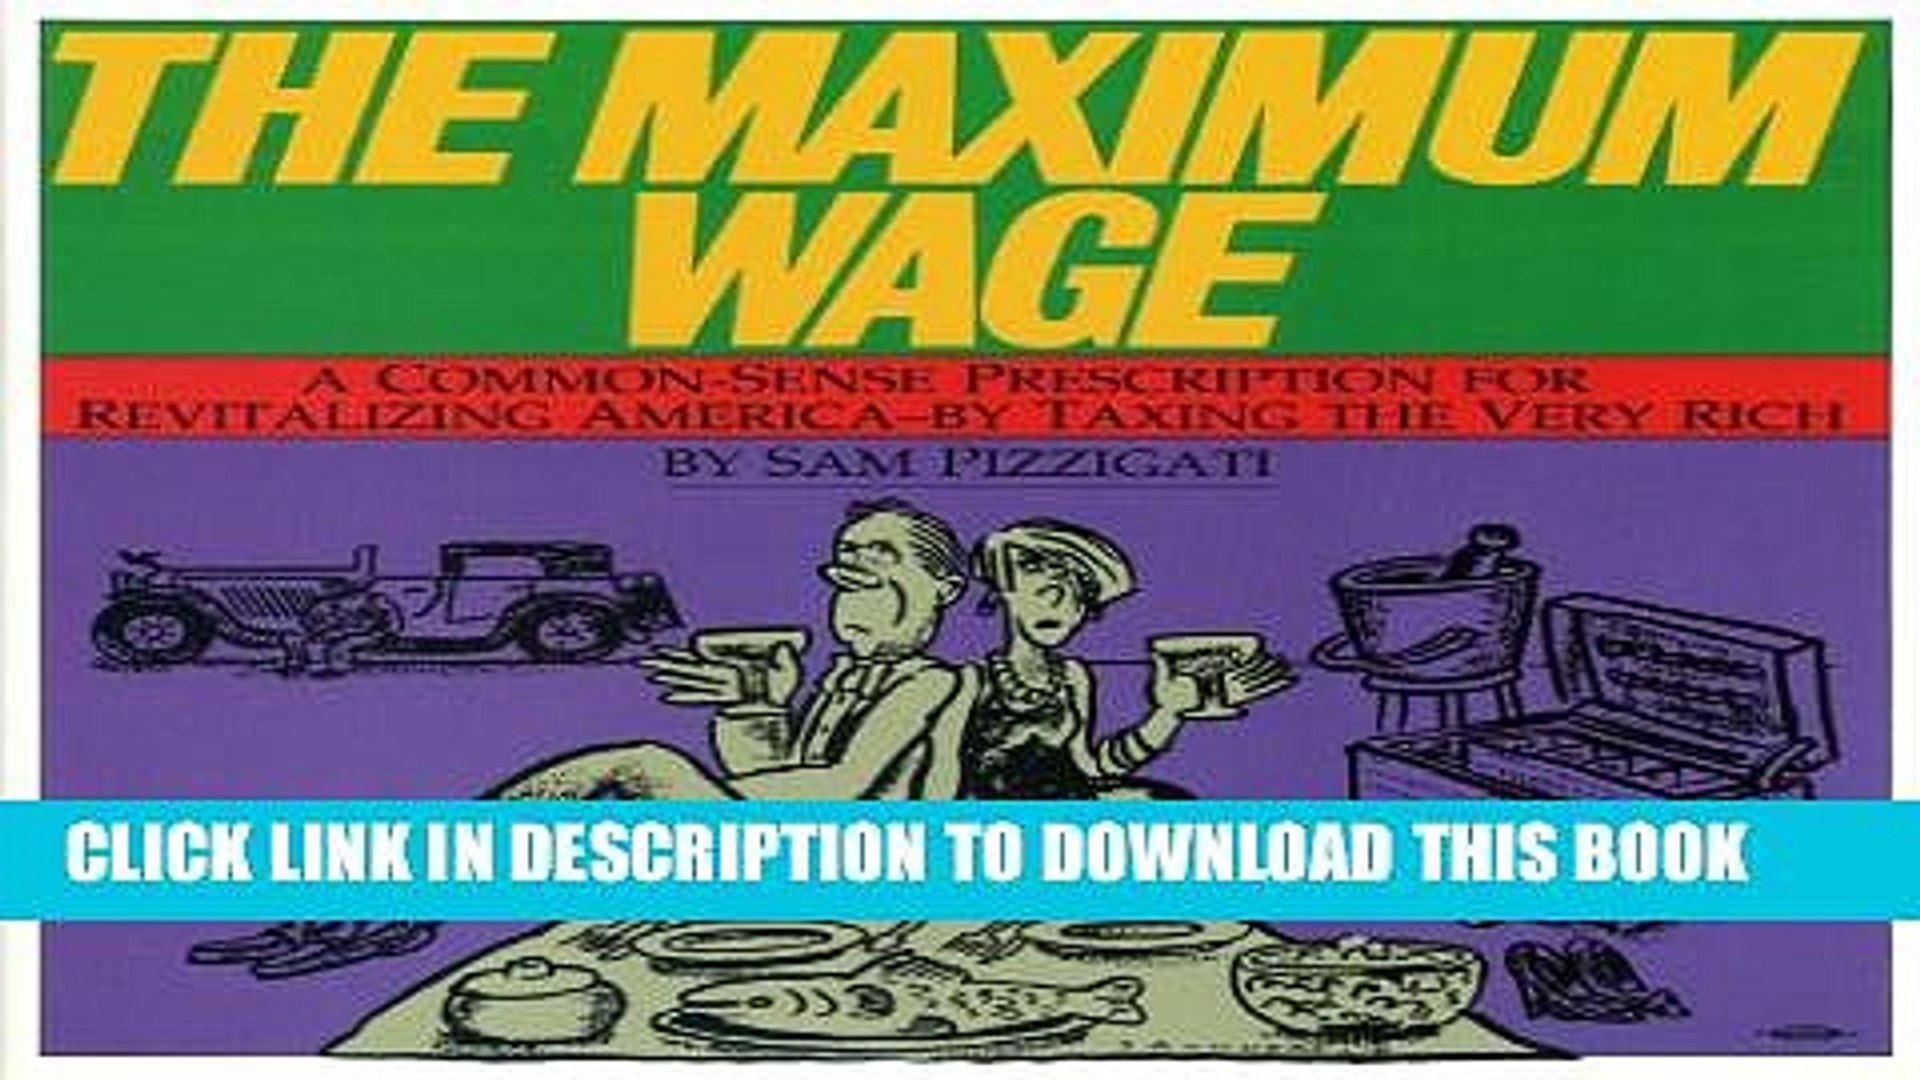 Collection Book The Maximum Wage: A Common-Sense Prescription for Revitalizing America - By Taxing